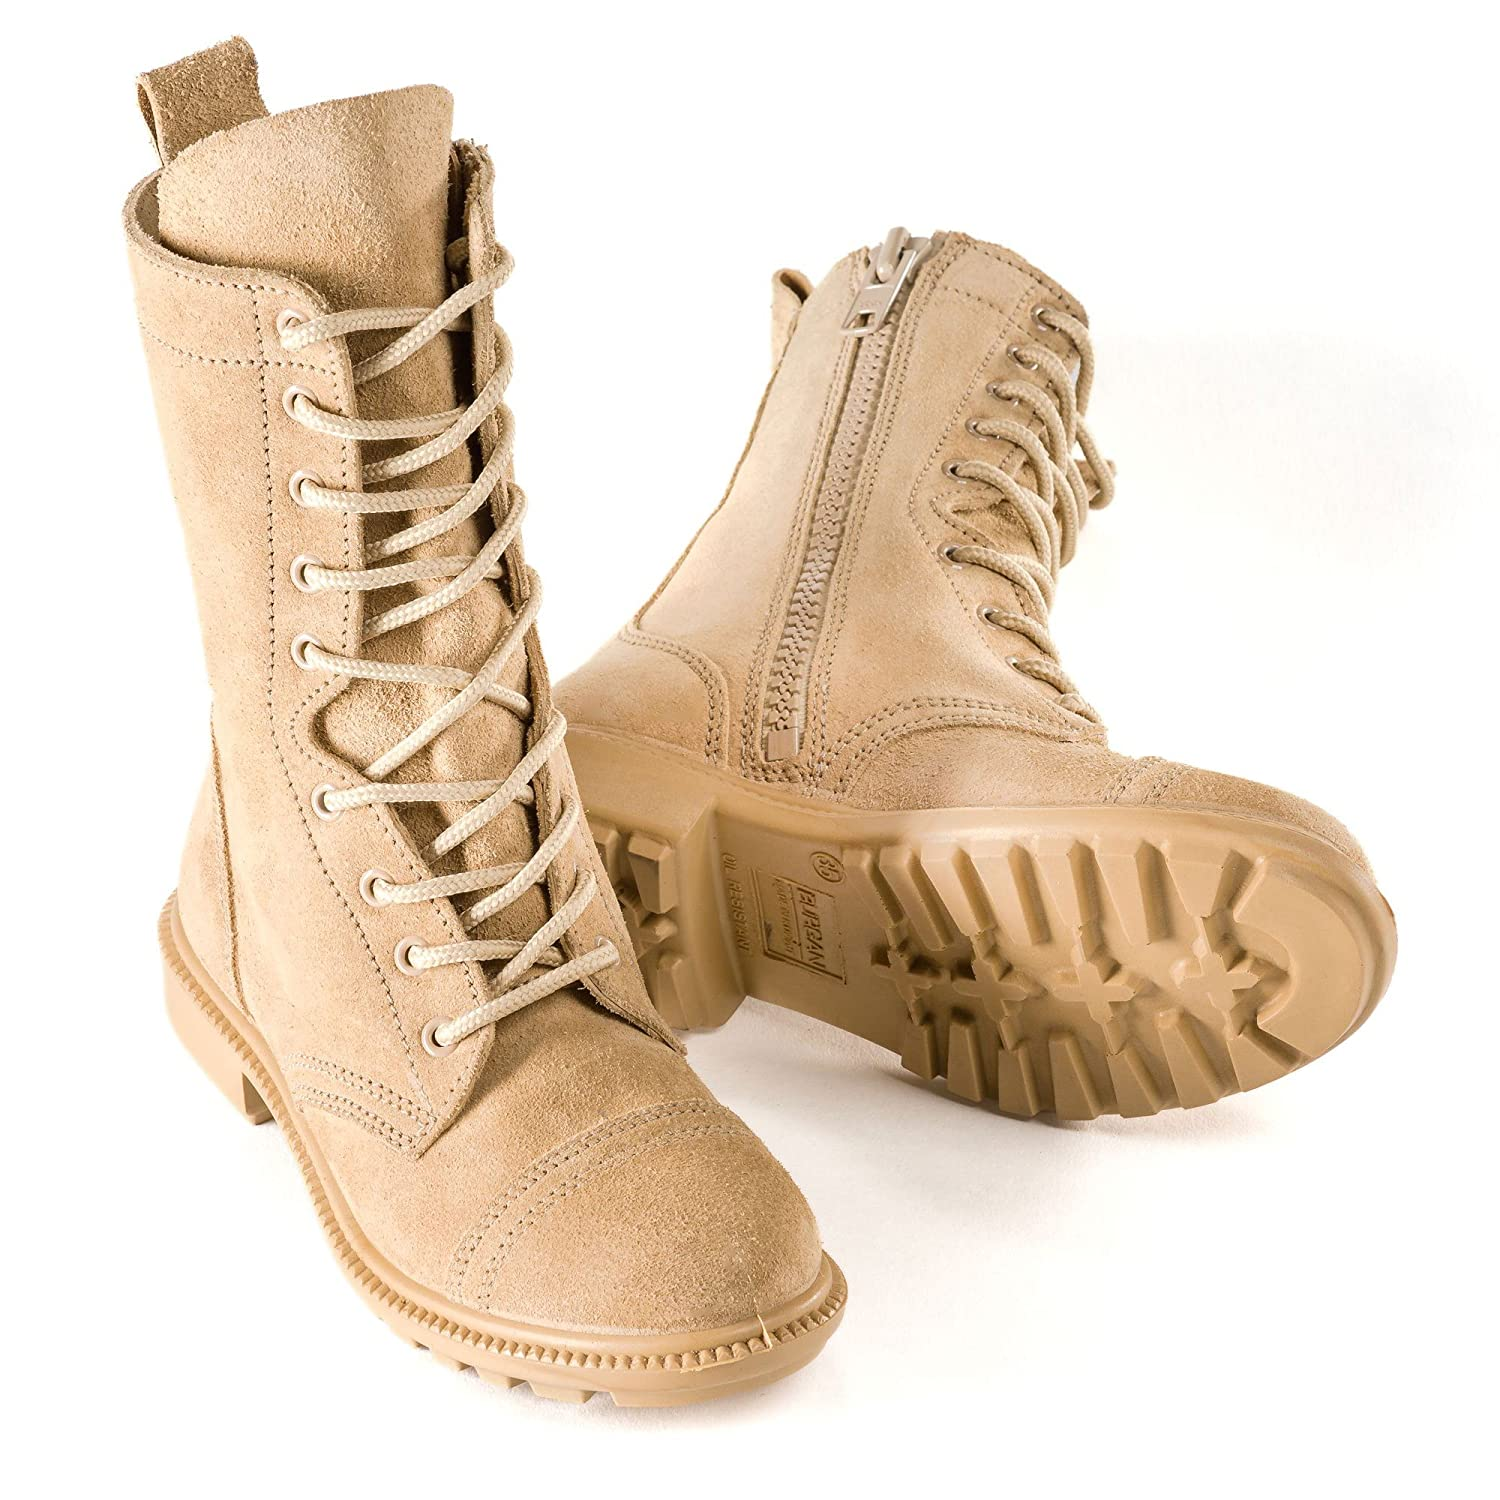 79b32f3aaee BURGAN 832 Desert Combat Boot - All Suede Leather with Side (Unisex ...